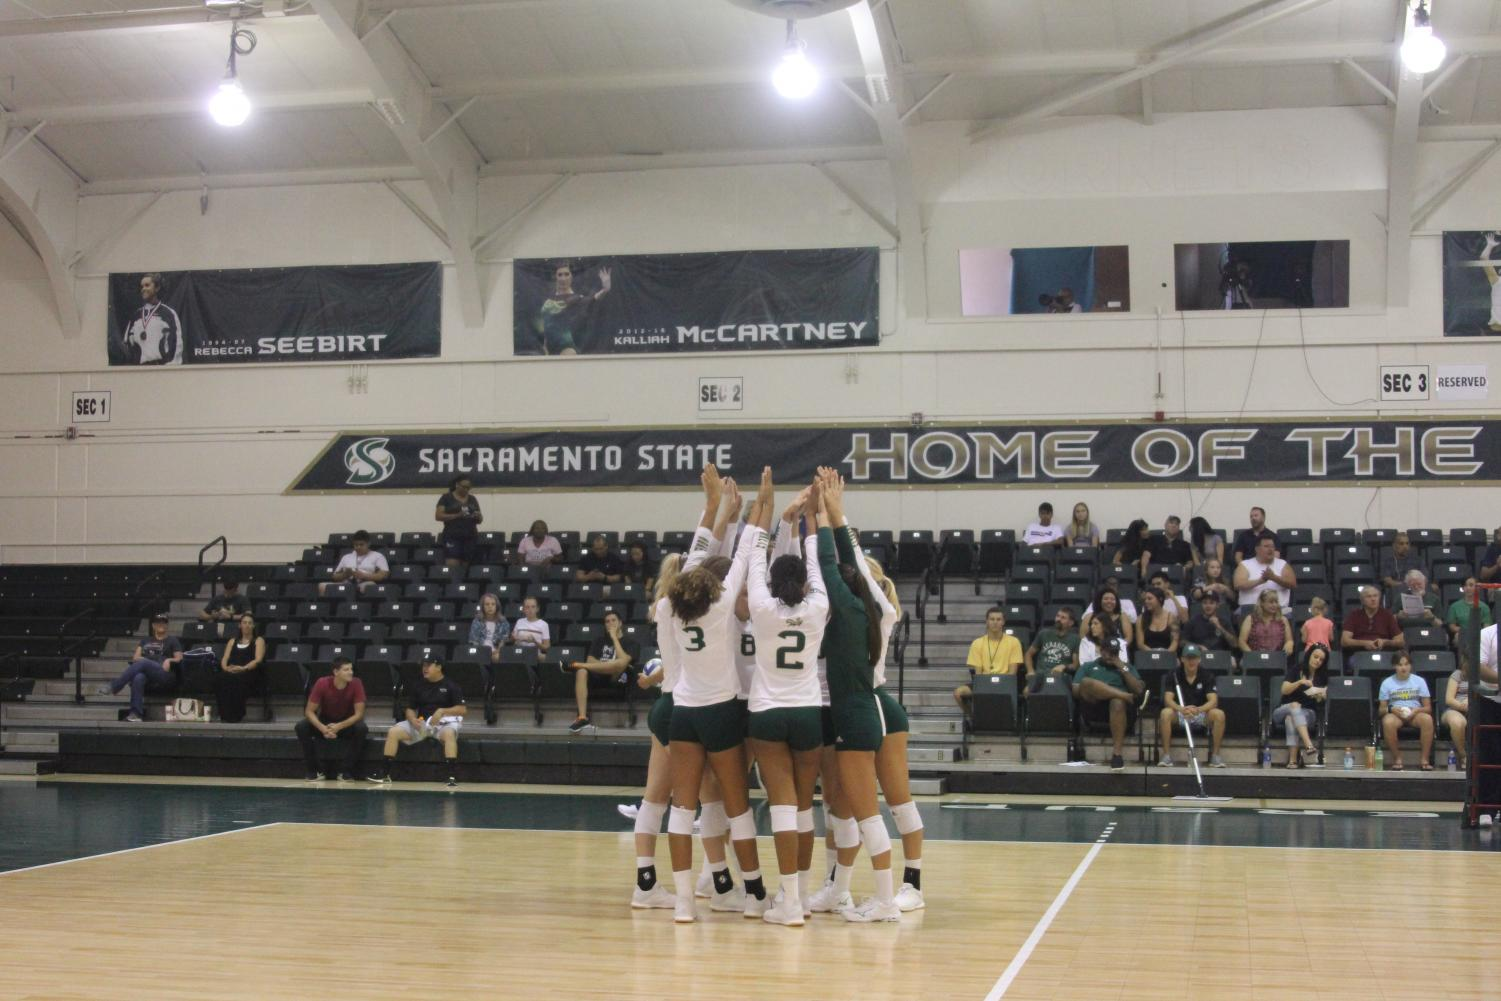 The+Sac+State+Women%27s+volleyball+team+comes+together+right+before+their+last+matchup+of+the+tournament+against+Nevada.+The+Hornets+won+the+tournament+despite+losing+to+Nevada.